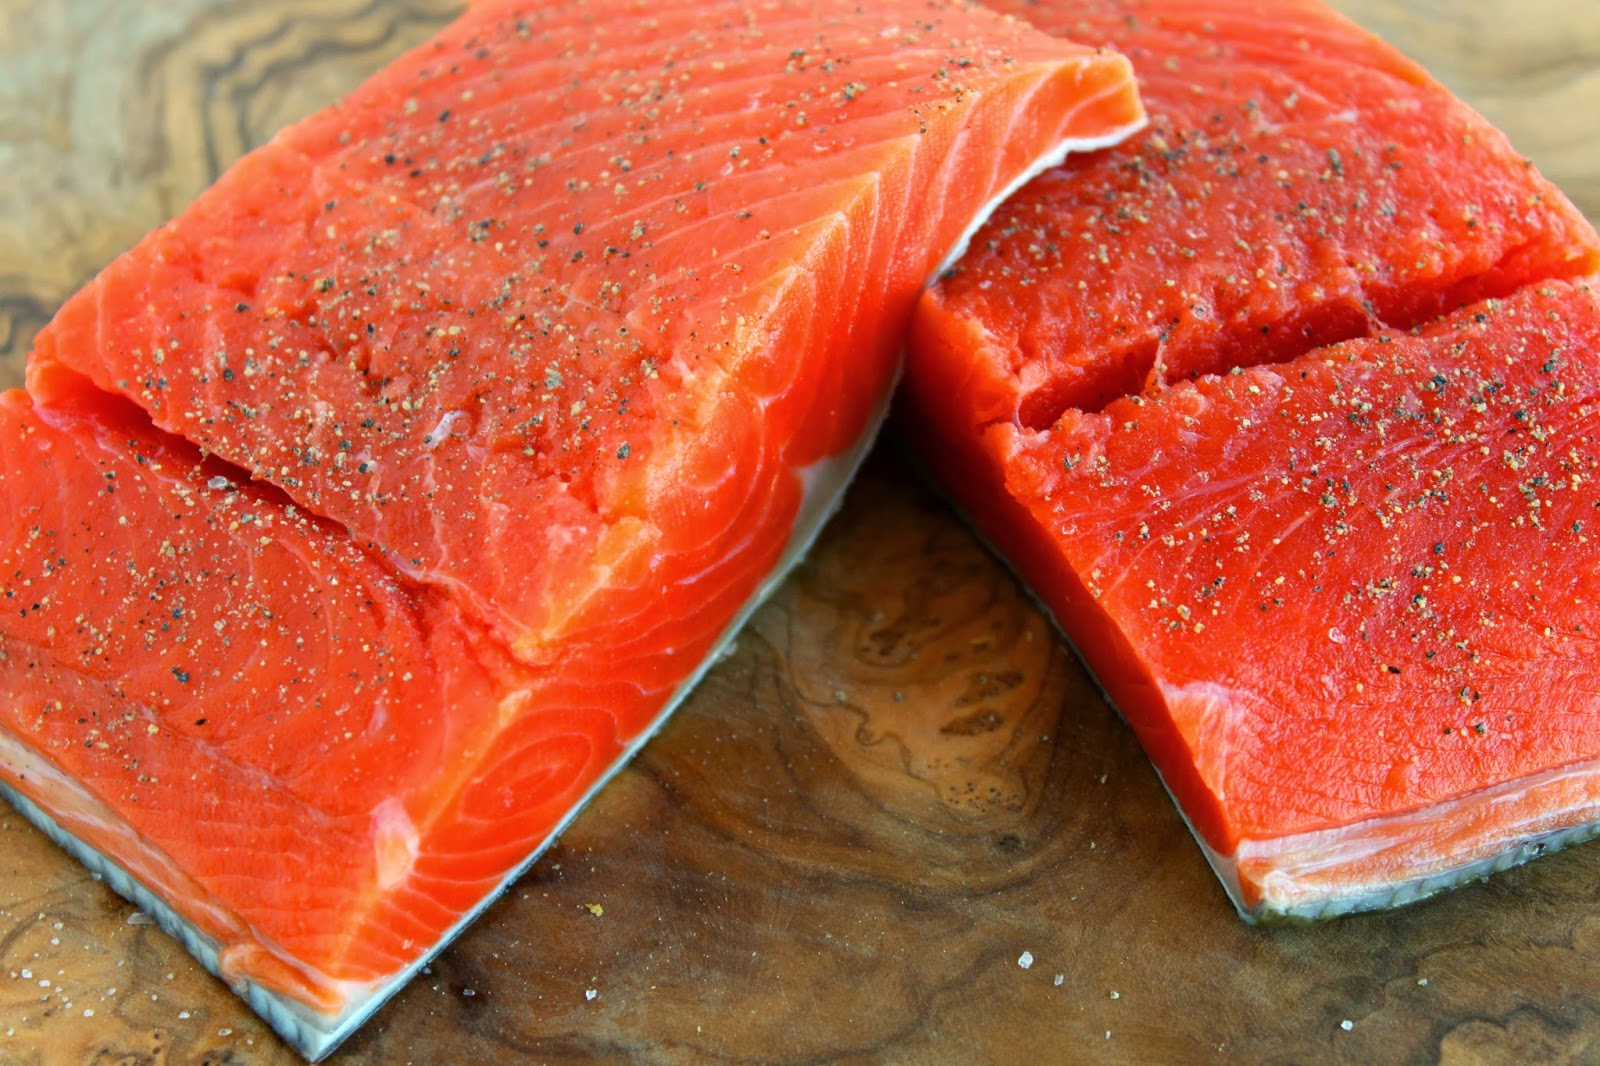 SALMON (Both Wild-caught and Farmed)